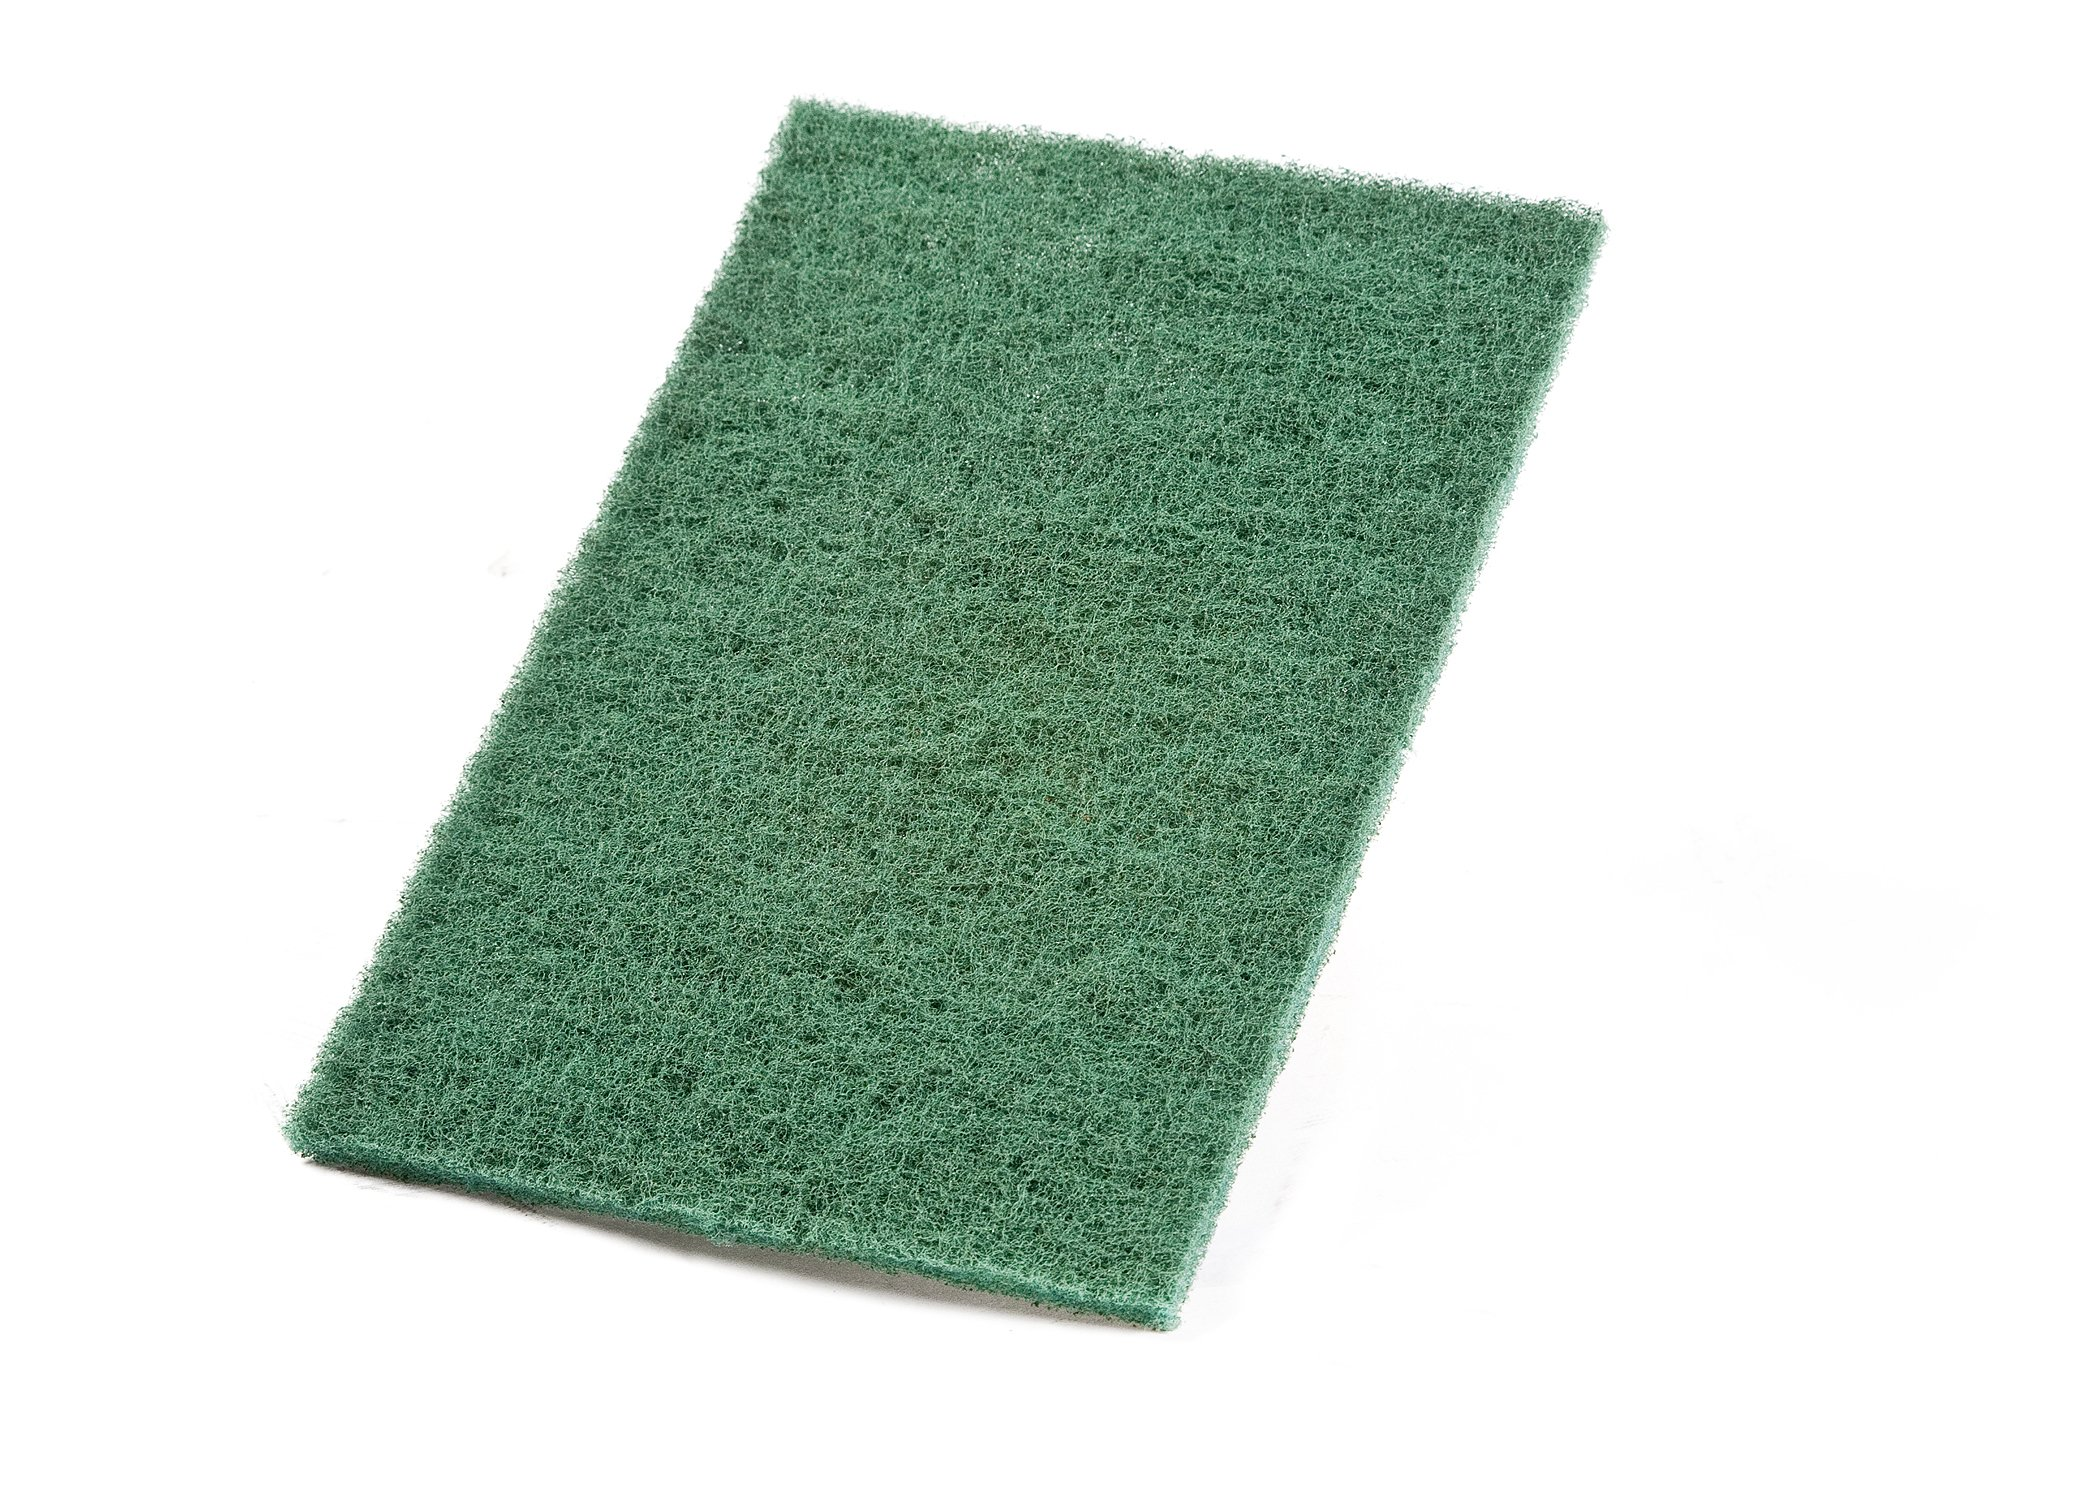 VSM Abrasive General Use Hand Pad, 6'' x 9'', Green (Pack of 10) by VSM